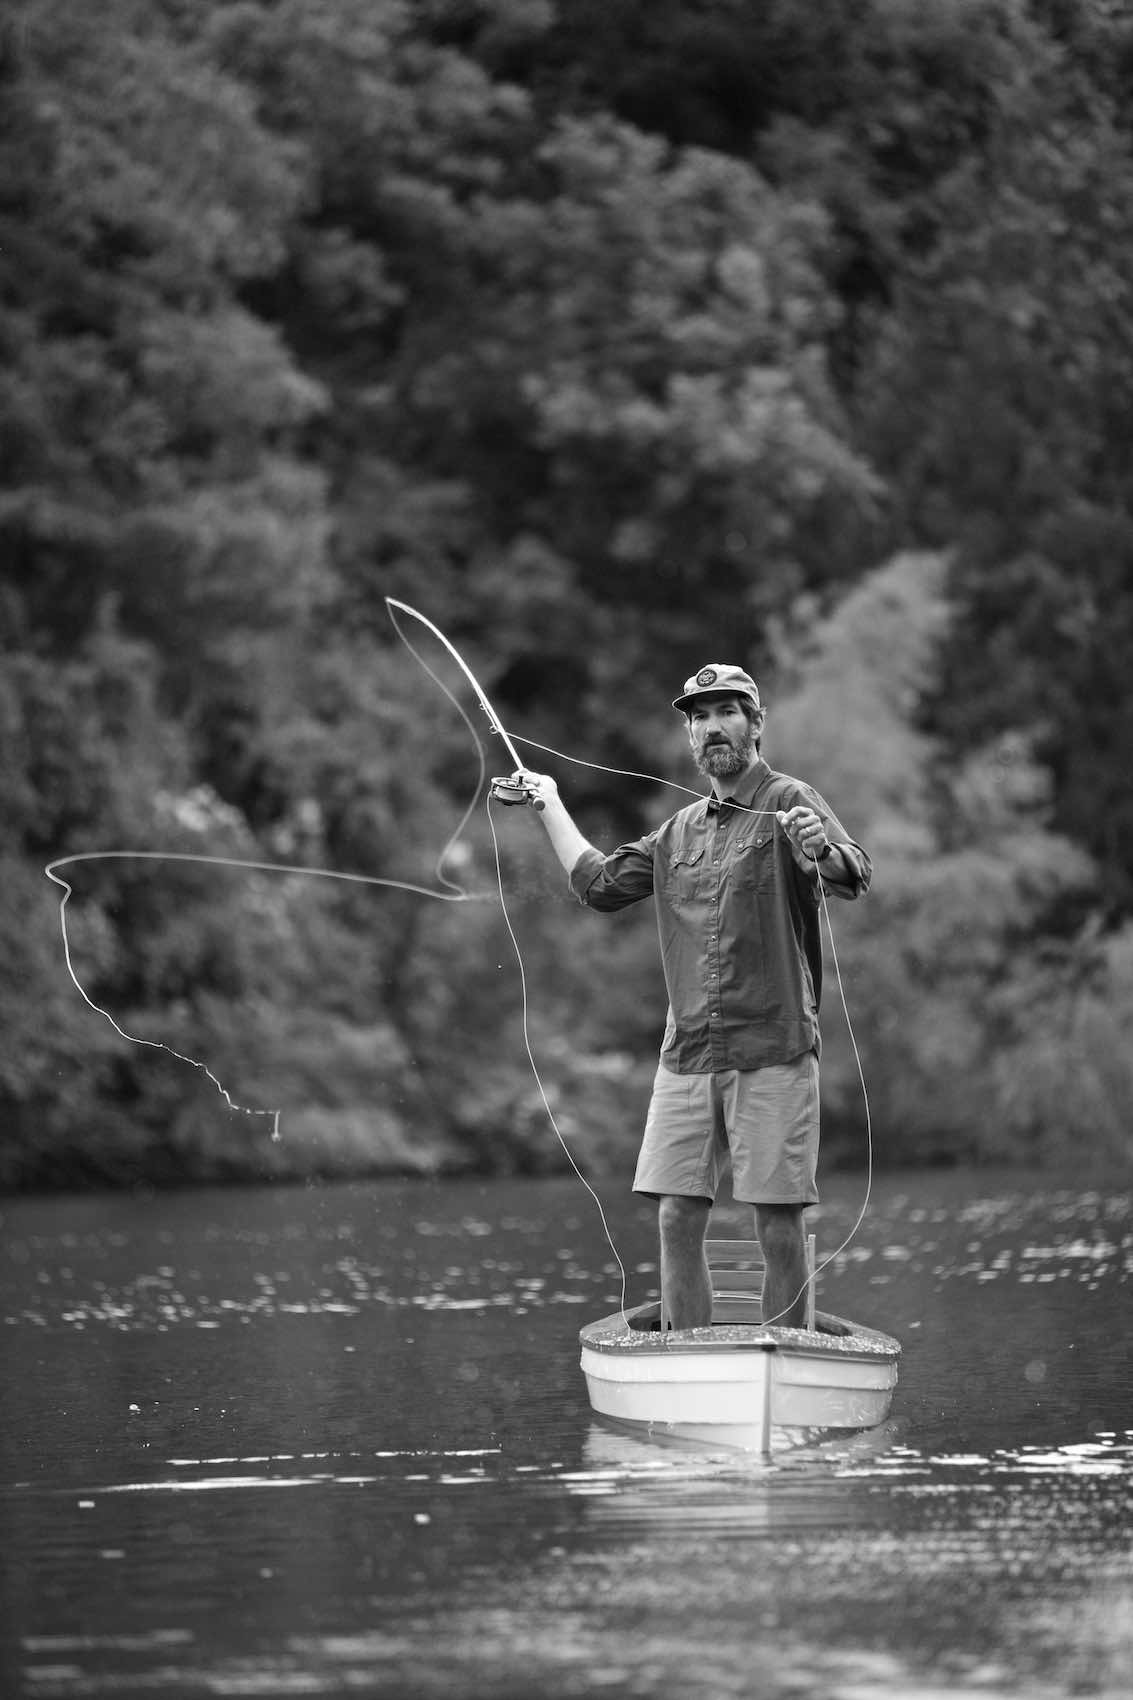 Jody Horton Photography - Fisherman casting line, shot in B&W for Case Knives.